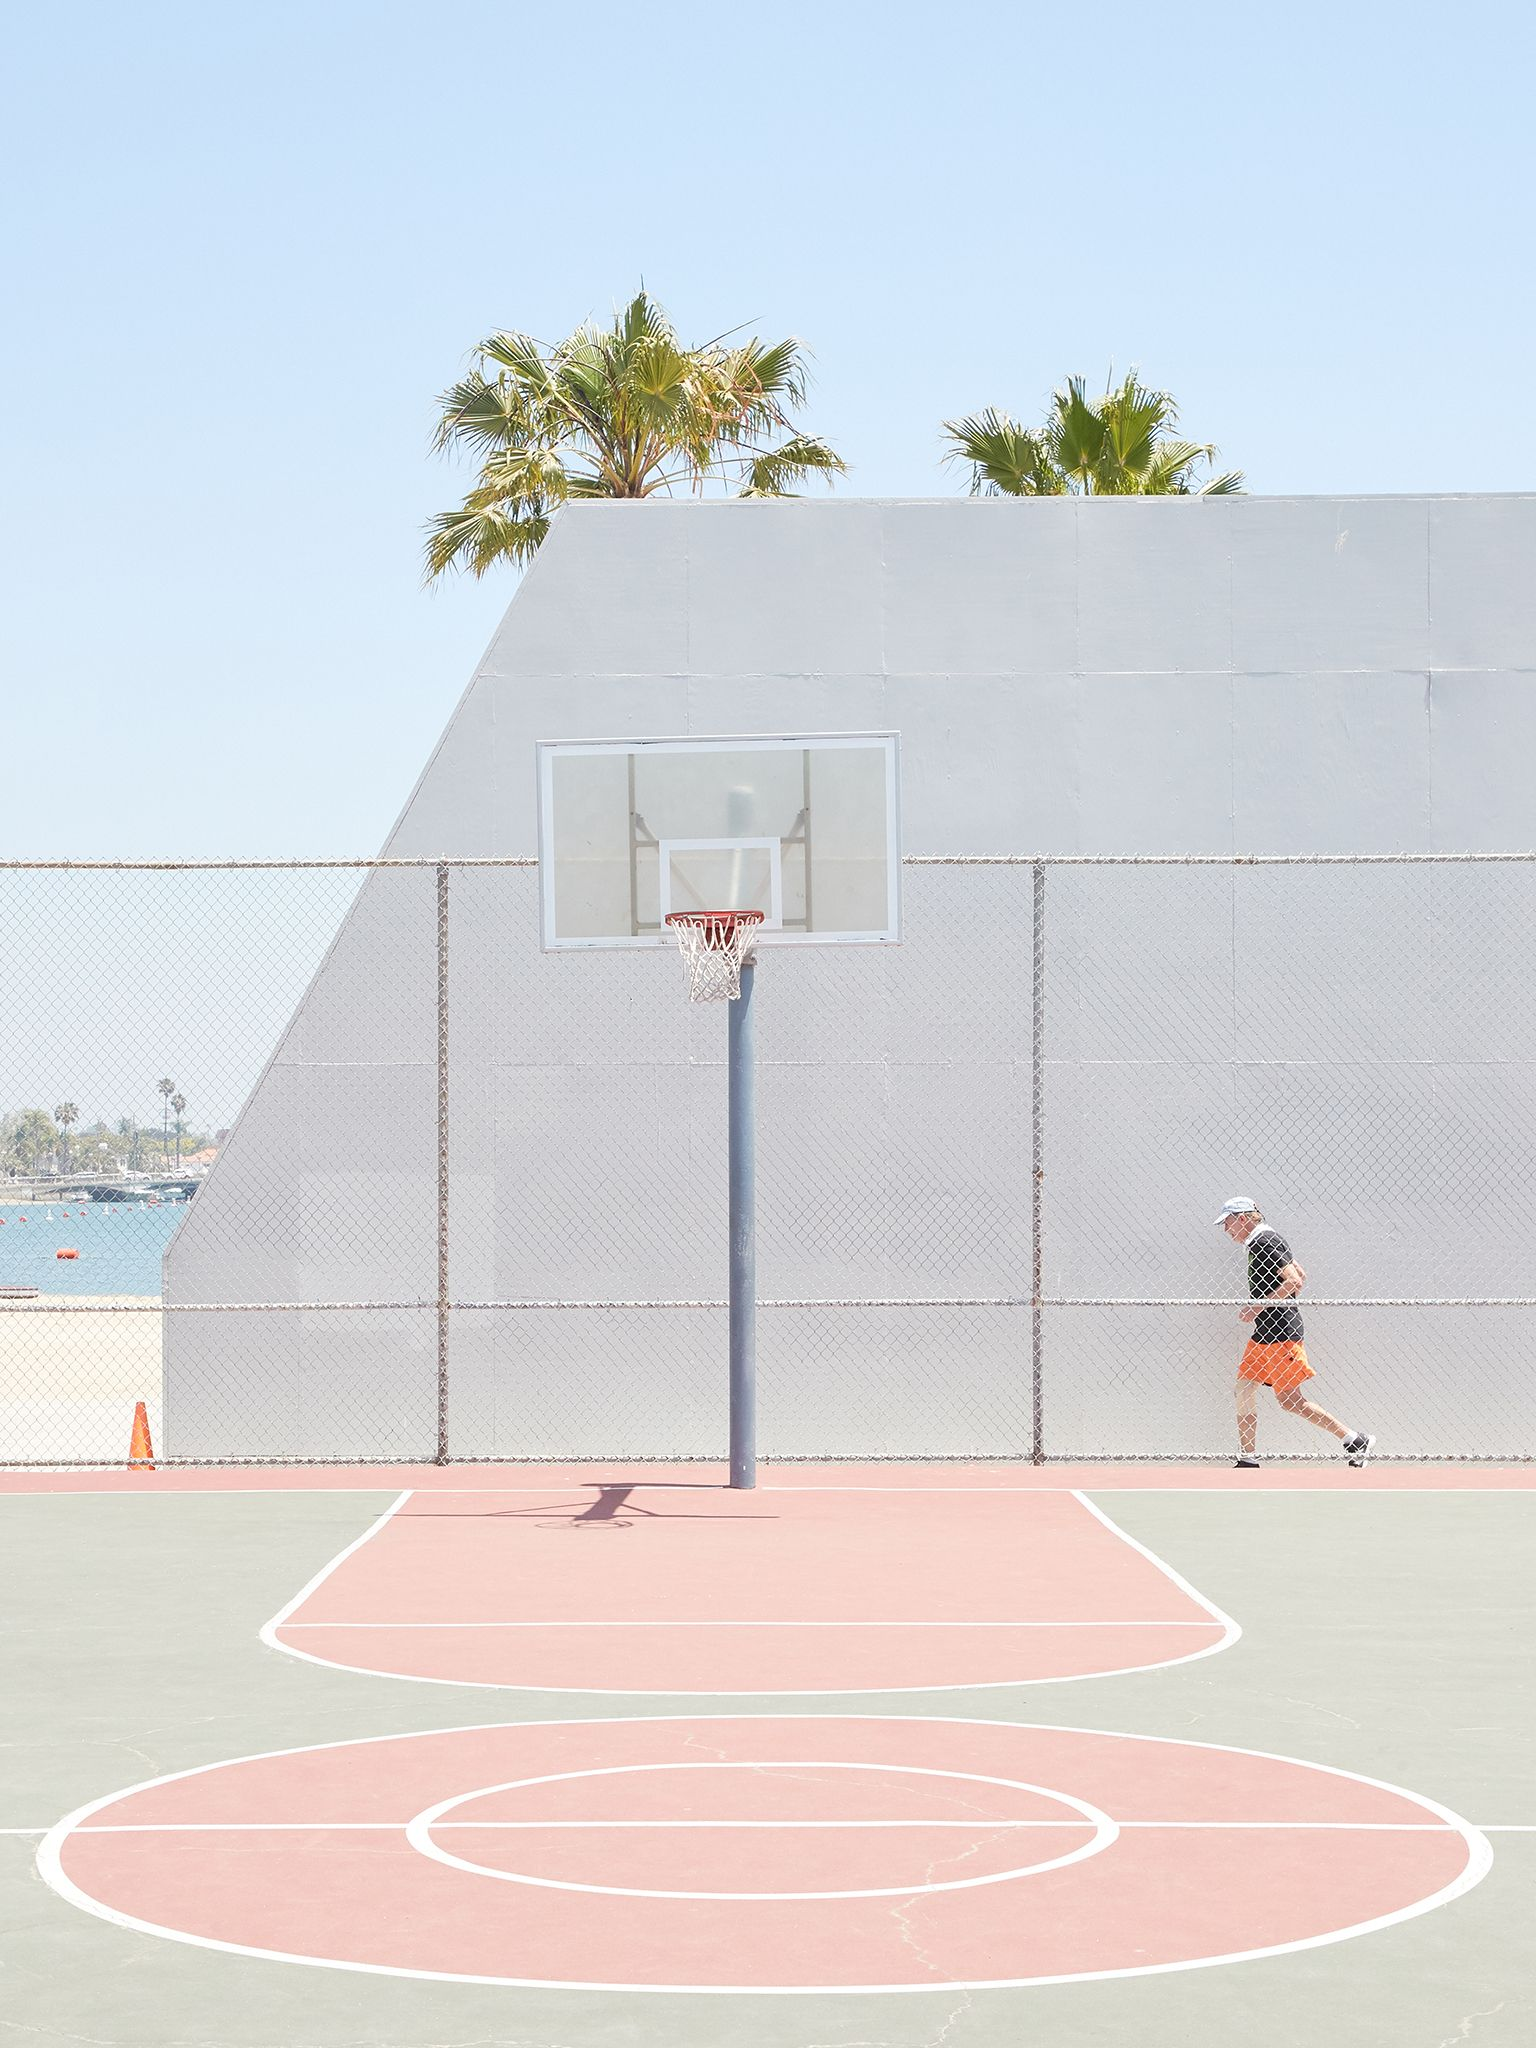 Los Angeles Court In 2020 Urban Landscape Basketball Aesthetic Pictures